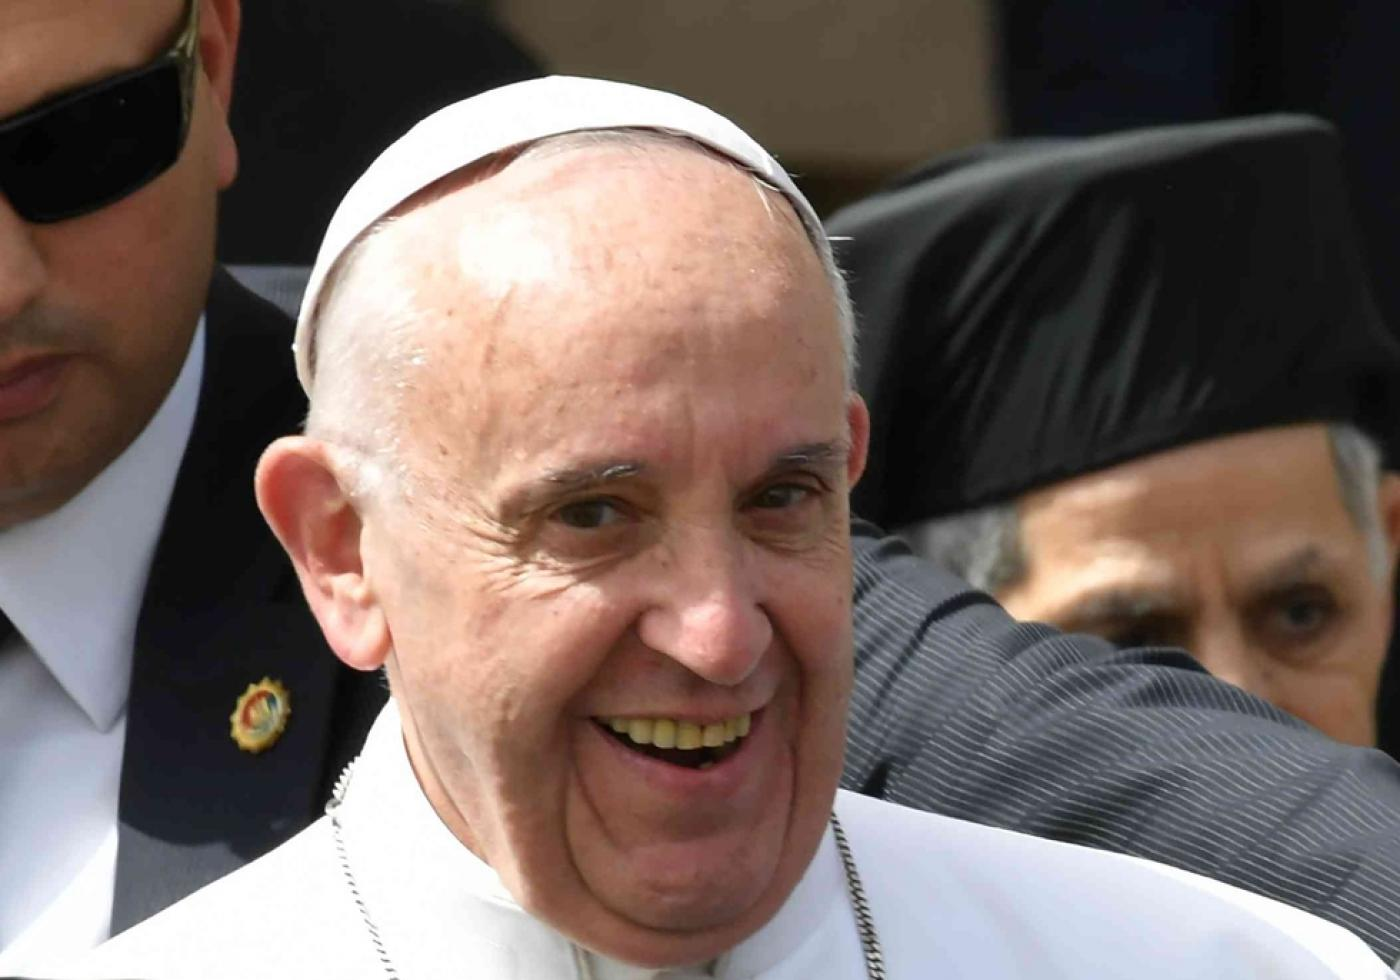 Pope Francis, in Egypt, urges 'unity and fraternity' after